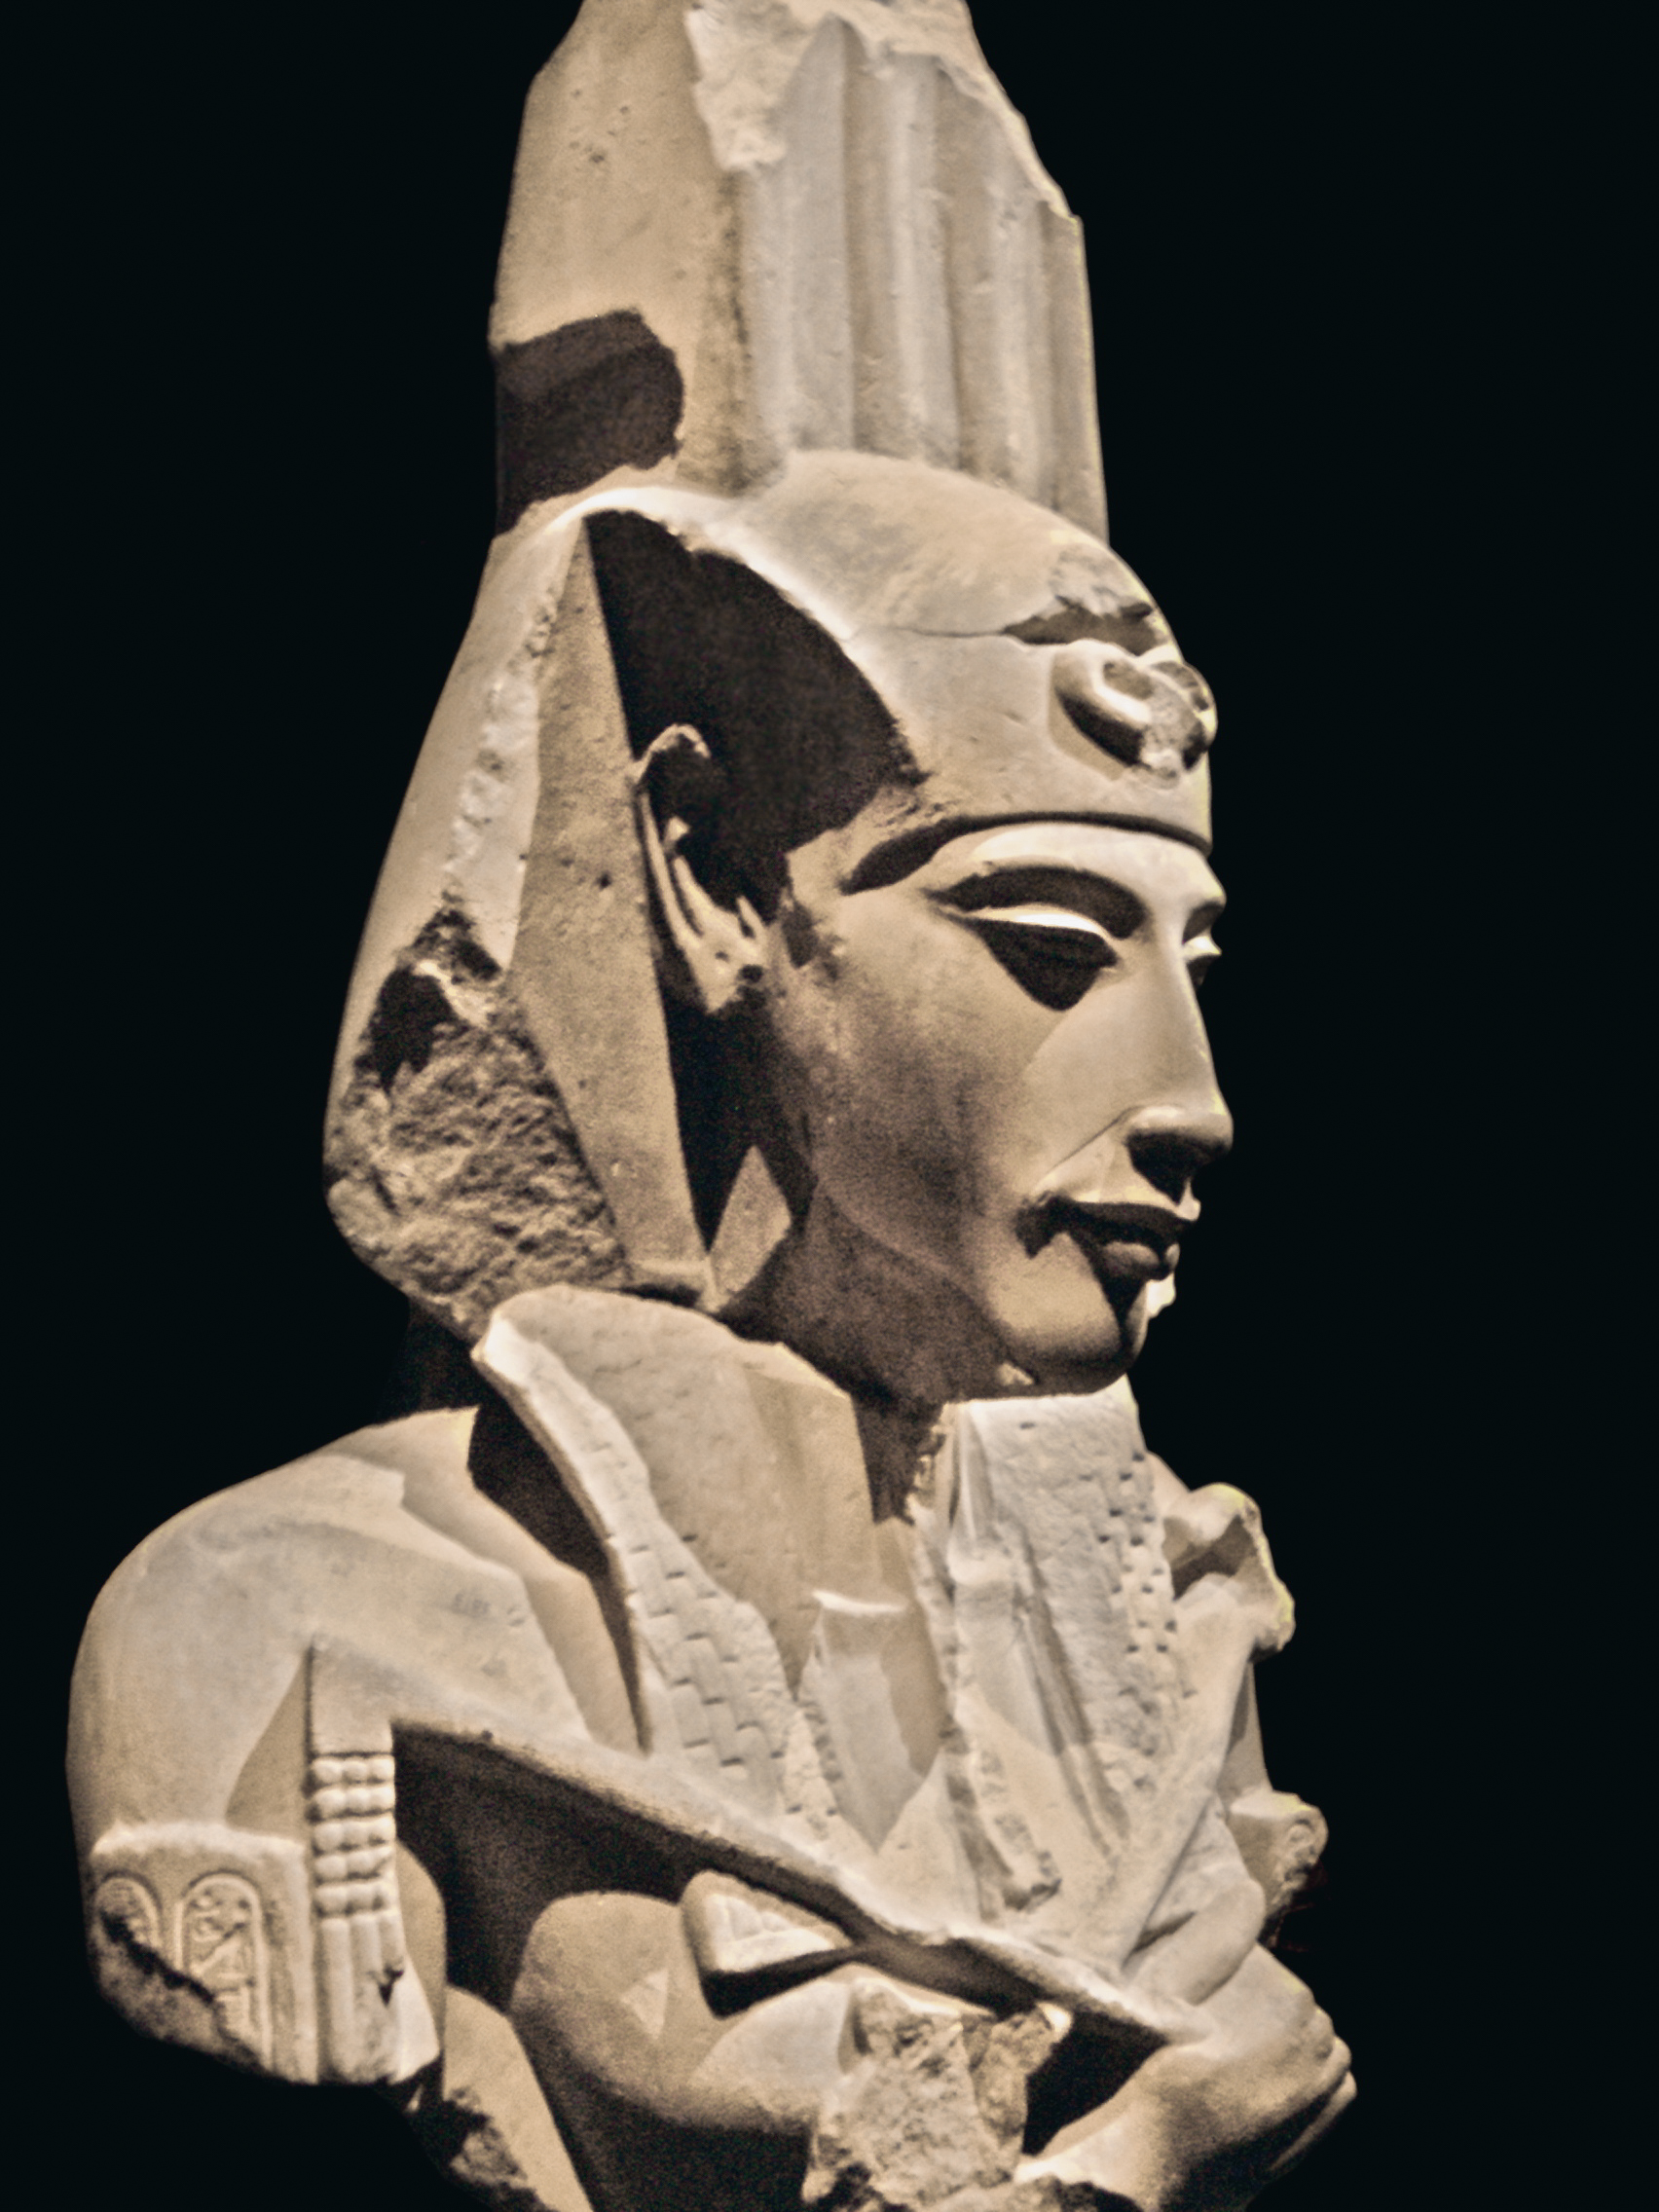 stone carving of  Faraoh Akhenaten